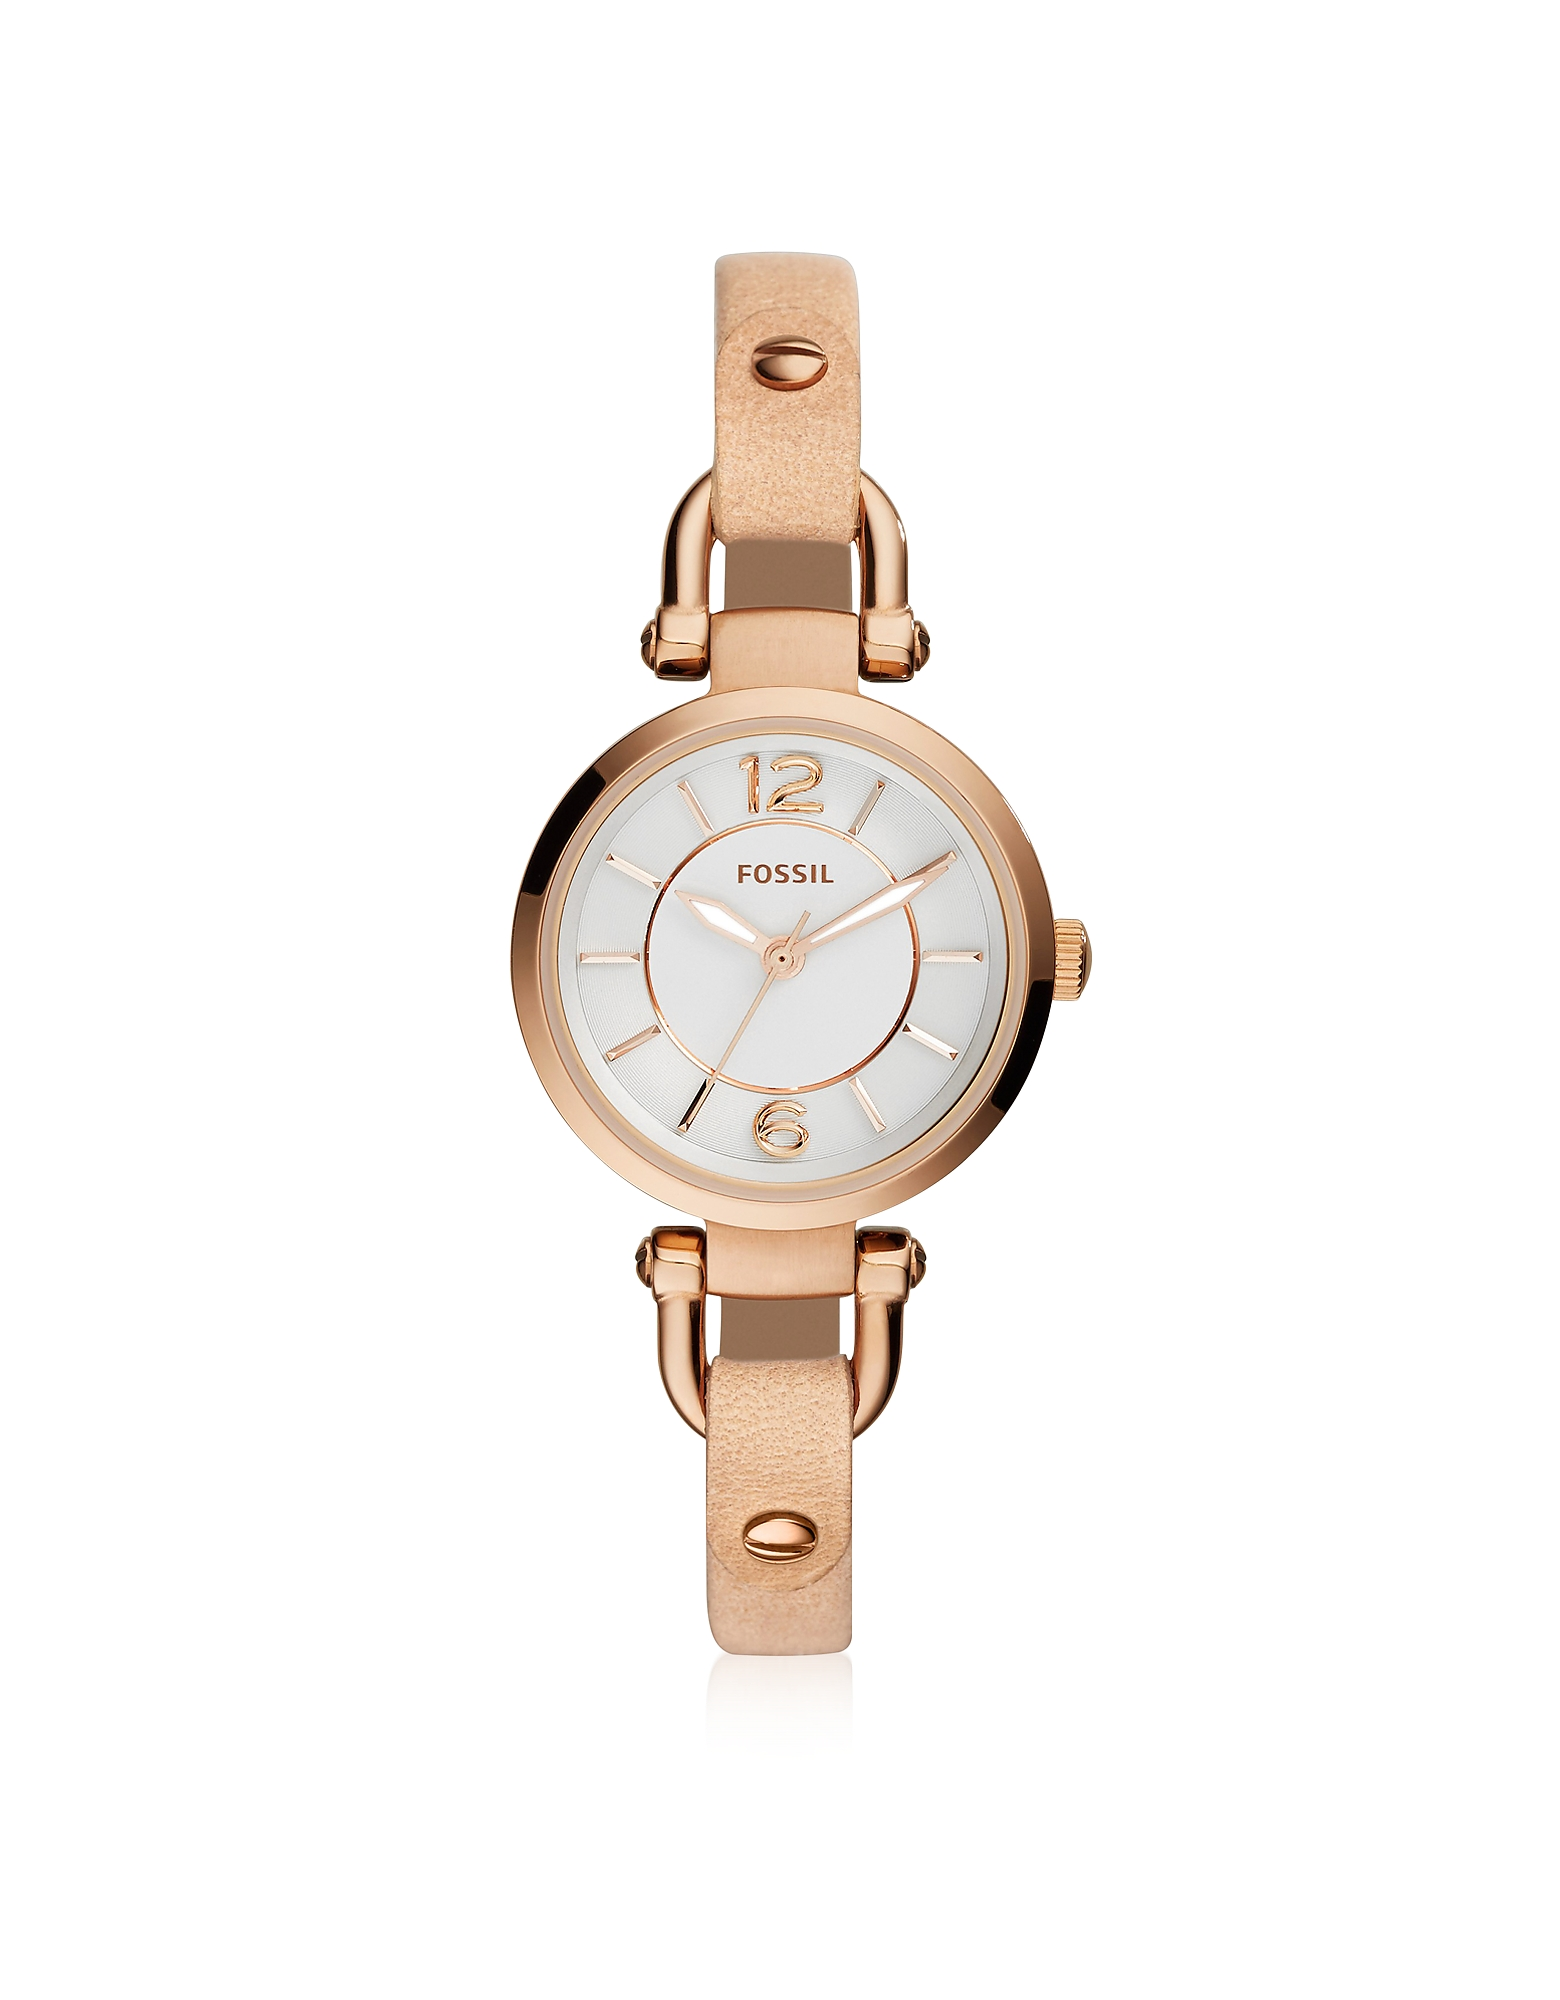 Fossil Women's Watches, Georgia Mini Rose Gold Tone Stainless Steel Case and Nude Leather Strap Wome